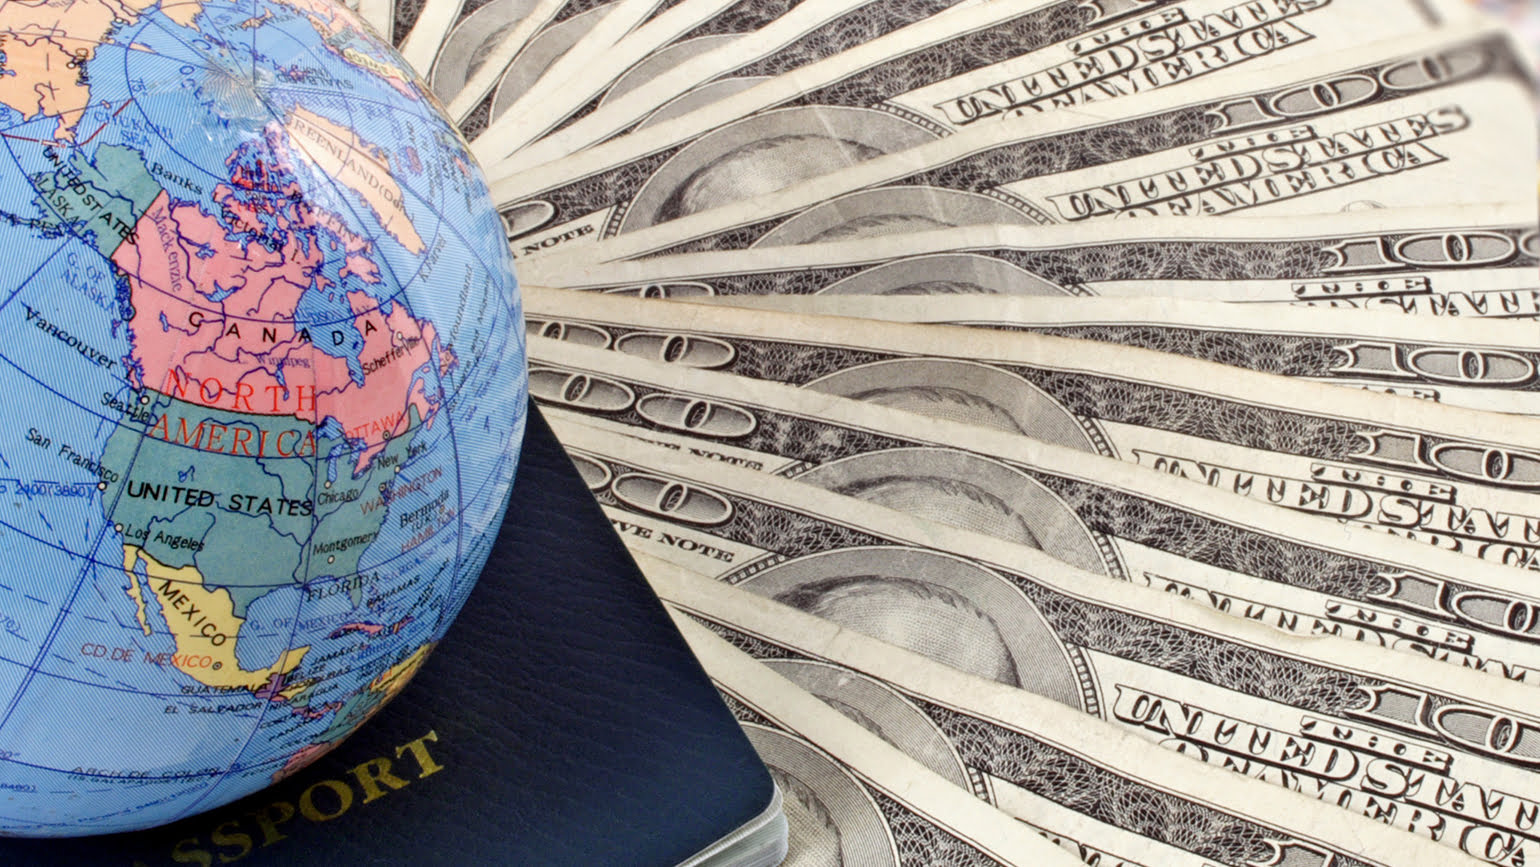 When a Foreign National Dies With Assets in the U.S., What Happens?